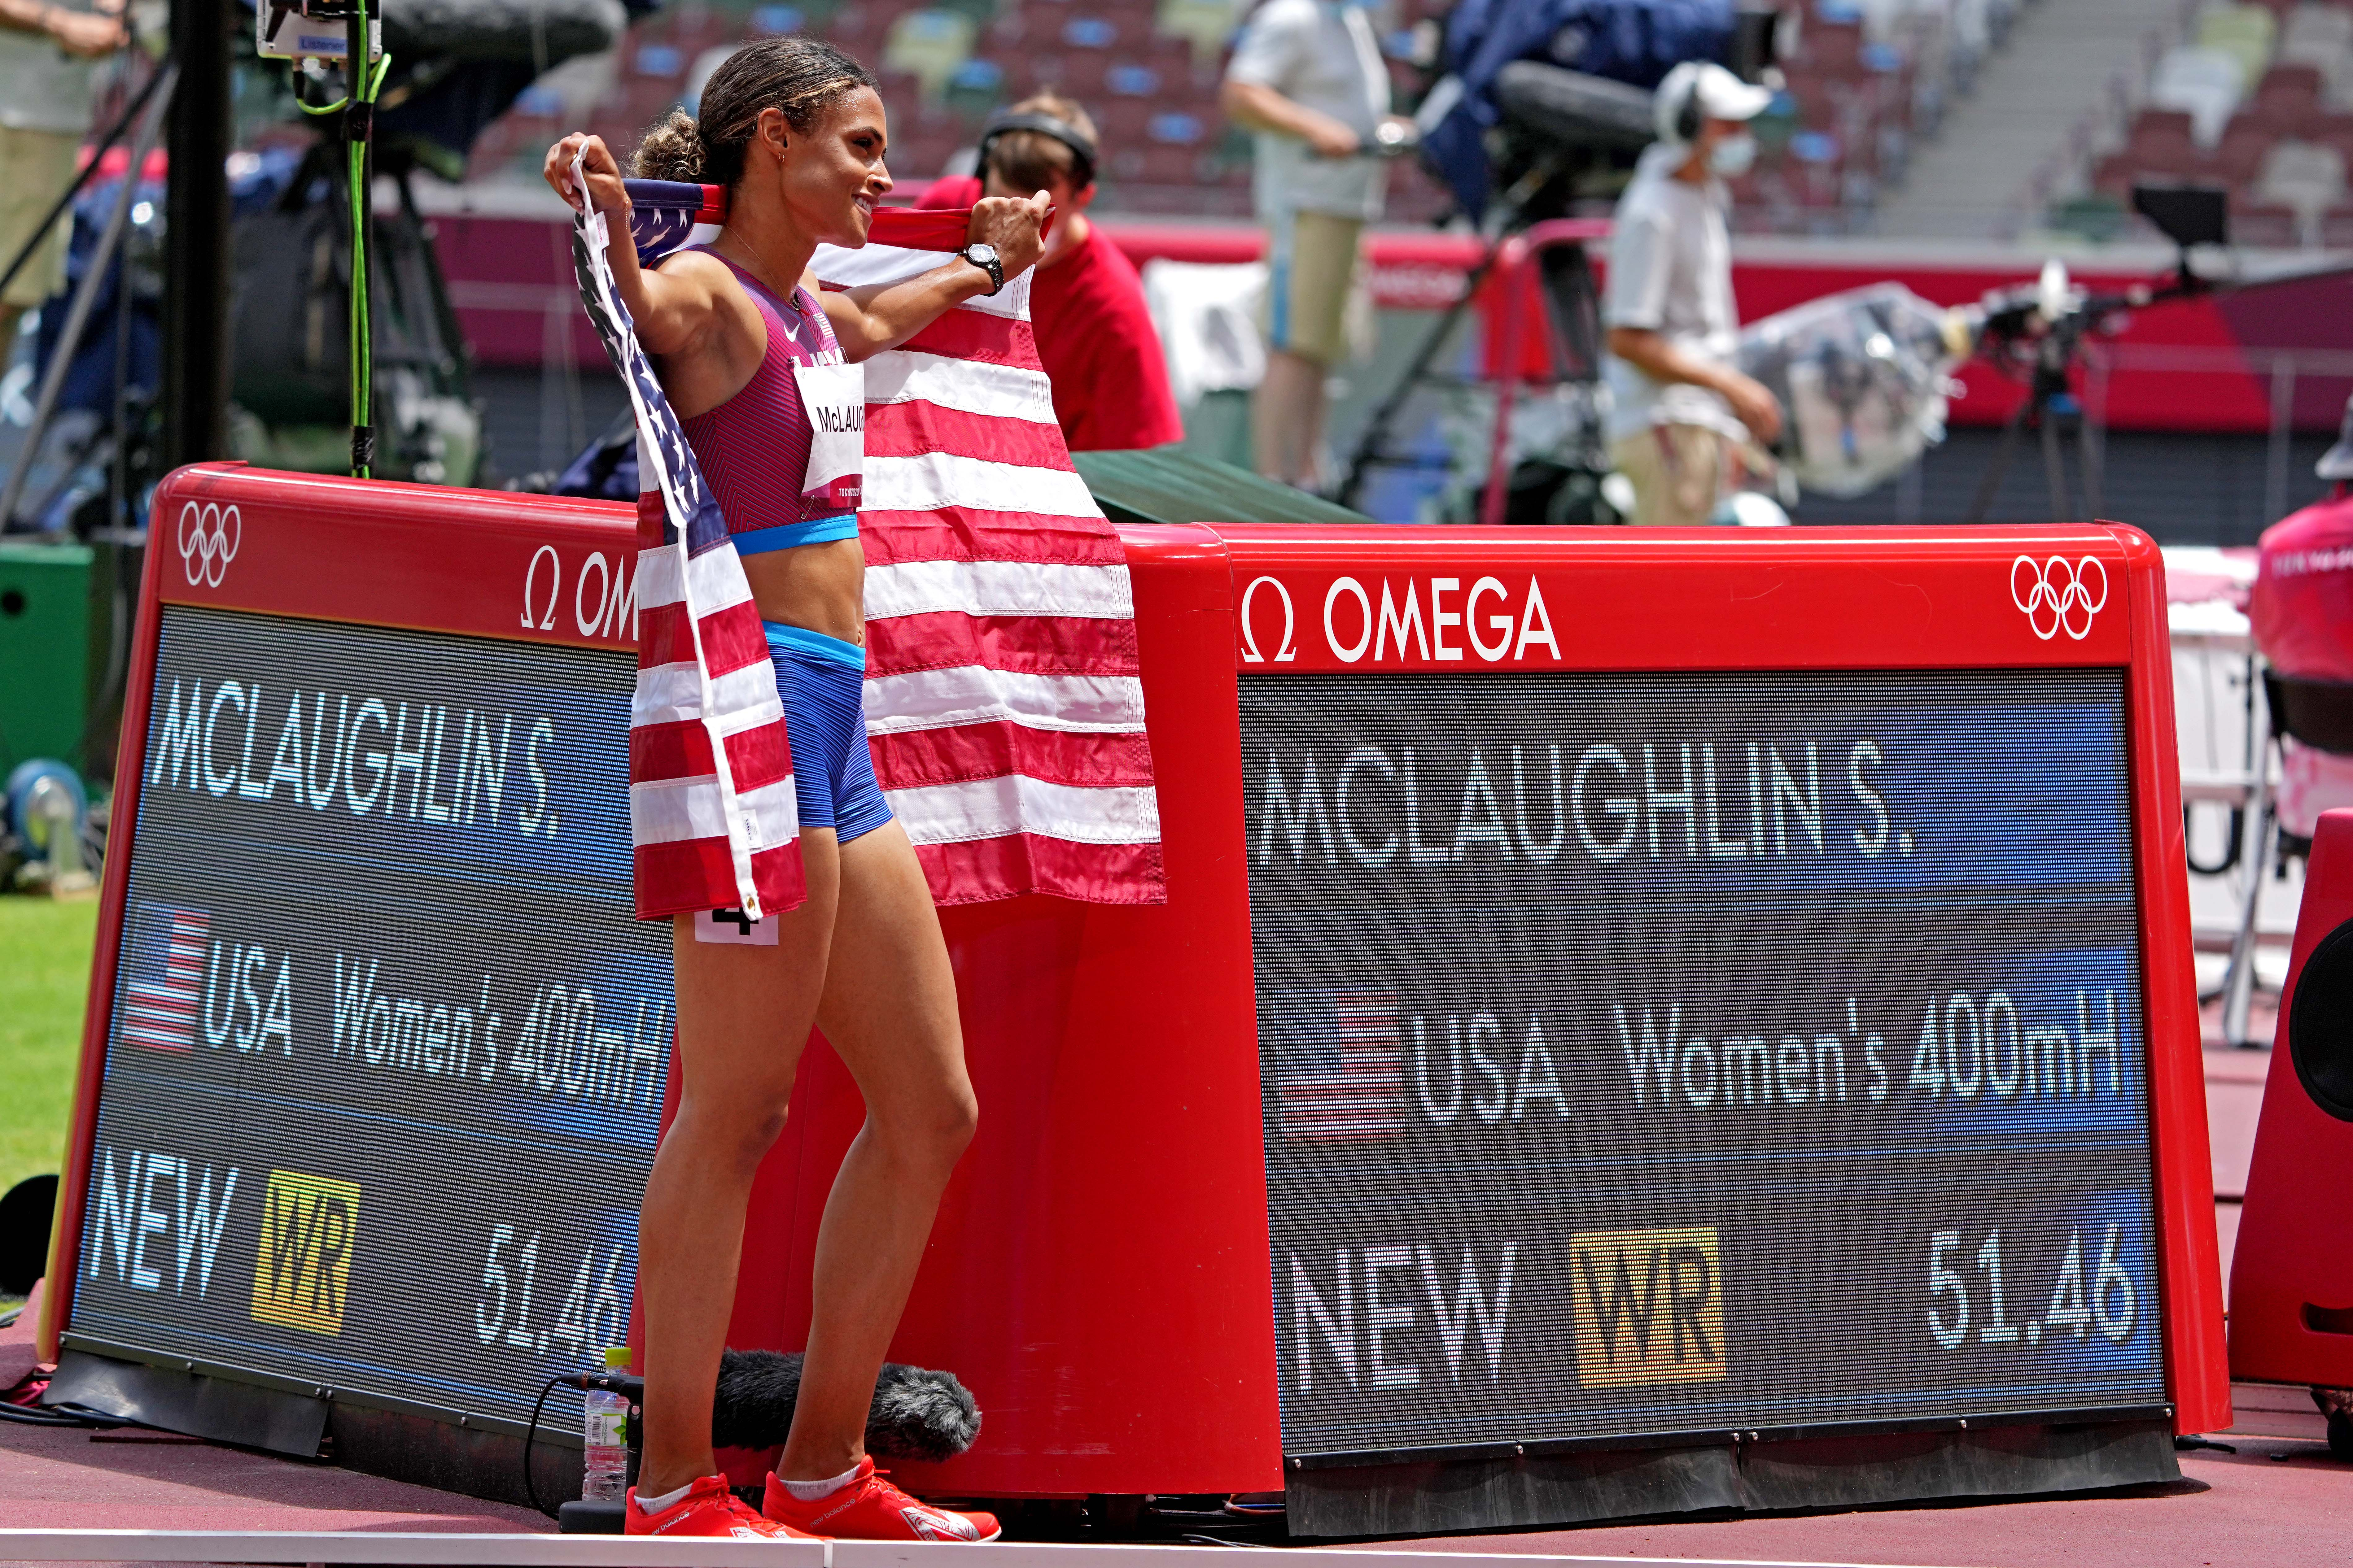 Aug 4, 2021; Tokyo, Japan; Sydney McLaughlin (USA) celebrates winning the gold medal in the women's 400m hurdles final in a world record time during the Tokyo 2020 Olympic Summer Games at Olympic Stadium. Mandatory Credit: Kirby Lee-USA TODAY Sports